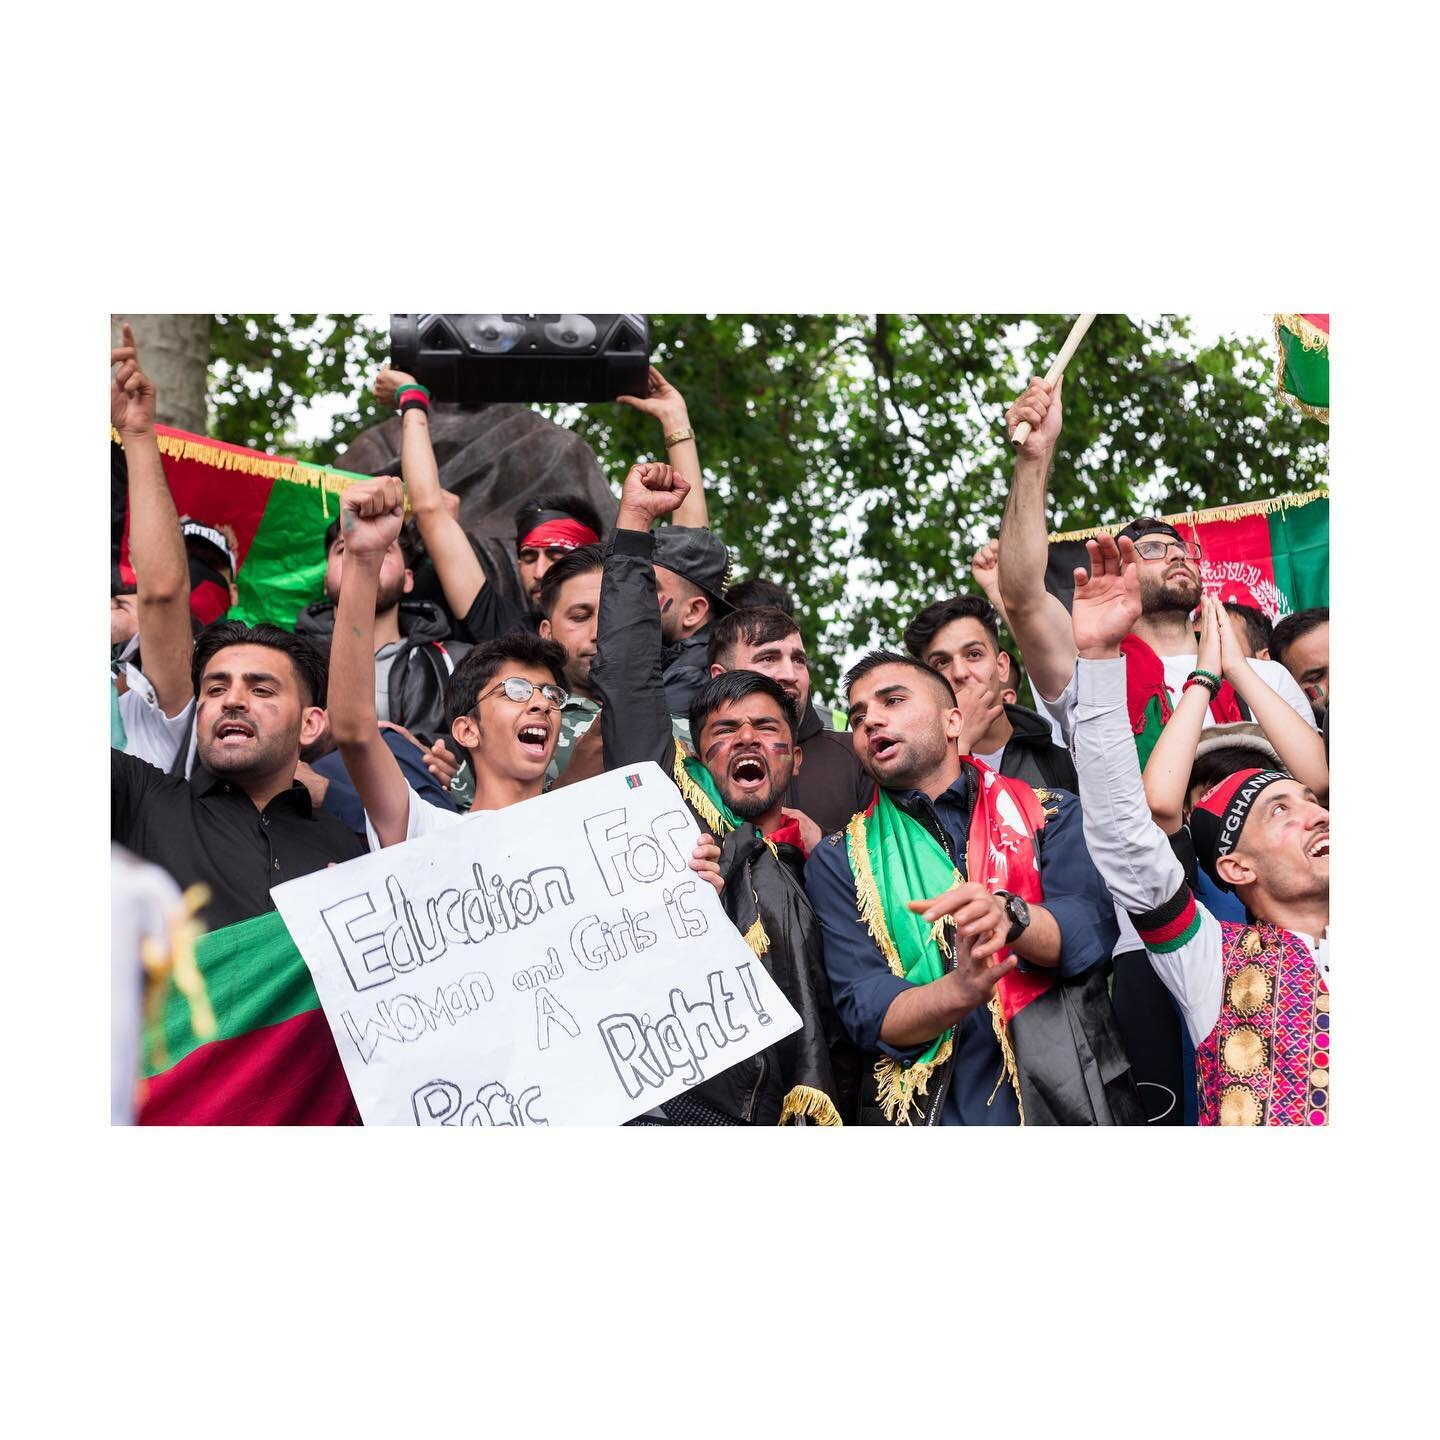 Photojournalism on @unilad @thenewarab   August 2021 - The Afghan diaspora in London, led by @thewatanldn , rallied in solidarity against Taliban control of the nation, and to demand urgent action on the part of the UK government.  #londonphotographer #londonphotography #londonphotojournalist #ukphotogtapher #ukphotojournalist #photojournalist #photojournalism #documentaryphotography #documentaryphotographer #documentingbritain #womenstreetphotographers #londoncameraproject #womenphotograph